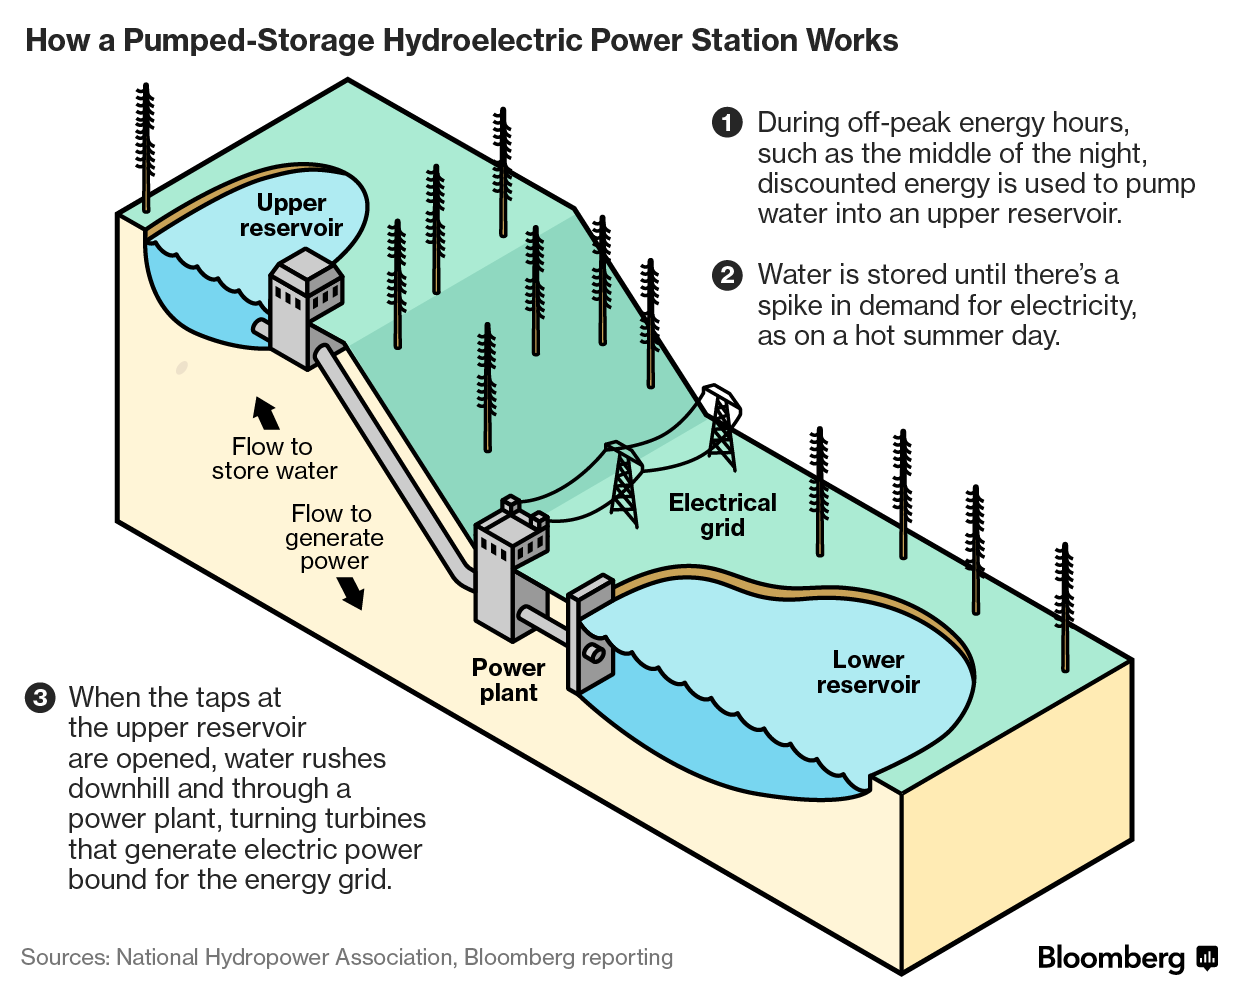 bloomberg-coalhydro-1495739763781.png